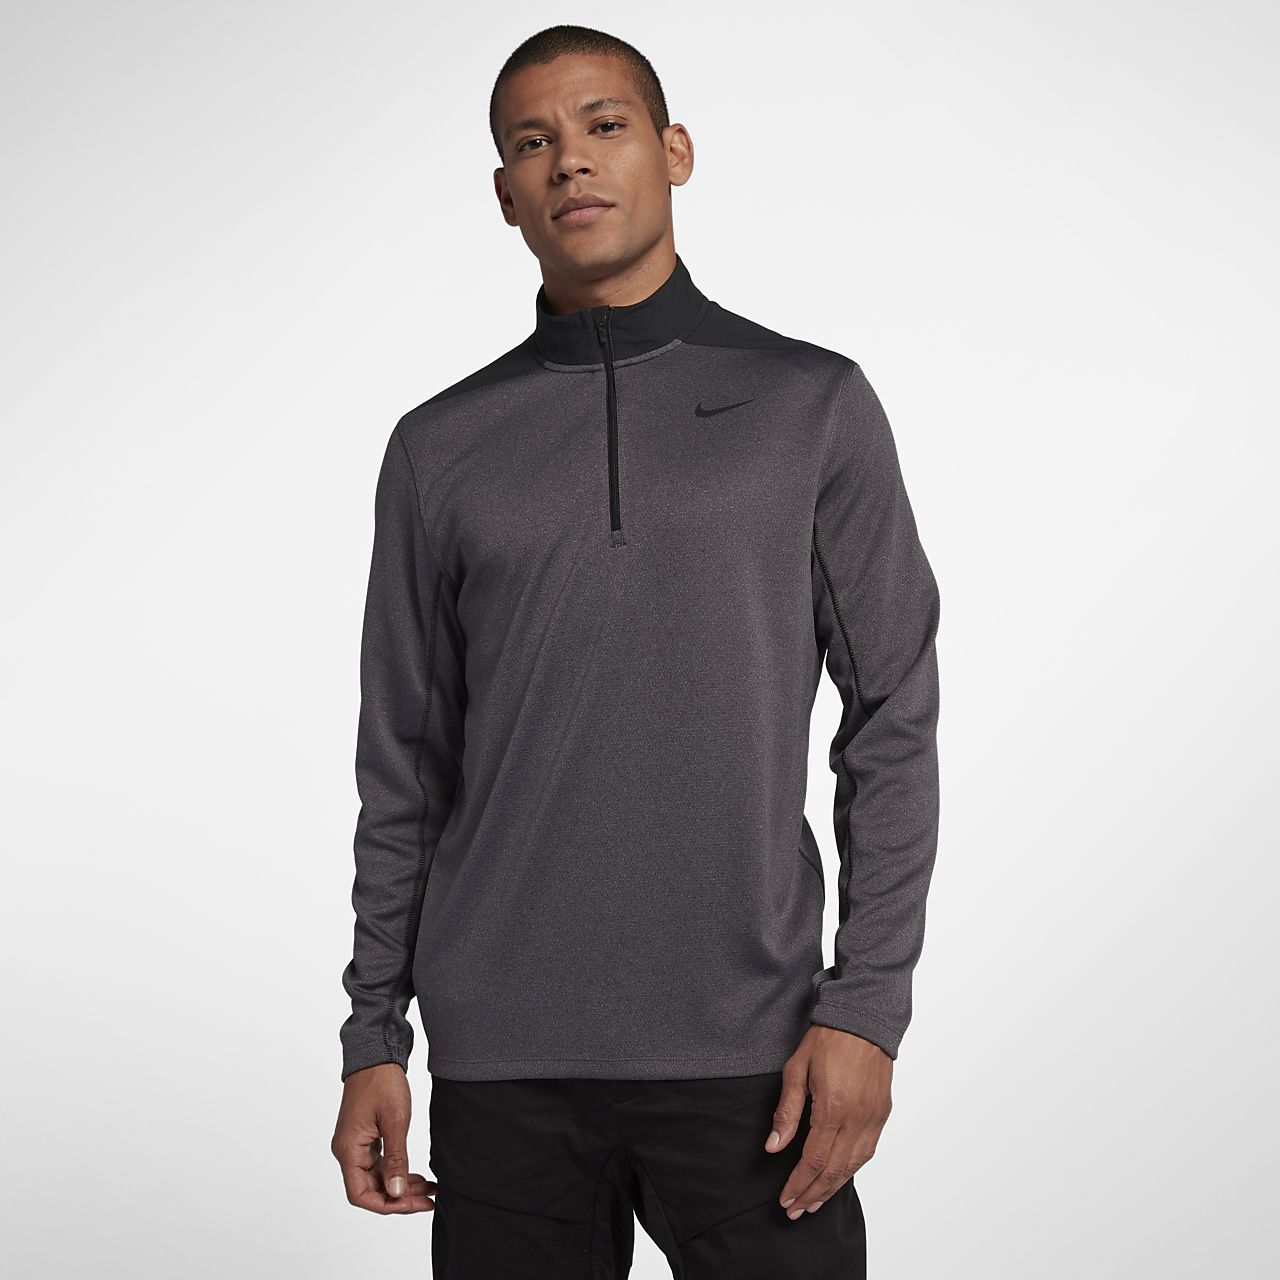 Nike Dri-FIT Part superior de mitja cremallera de golf - Home